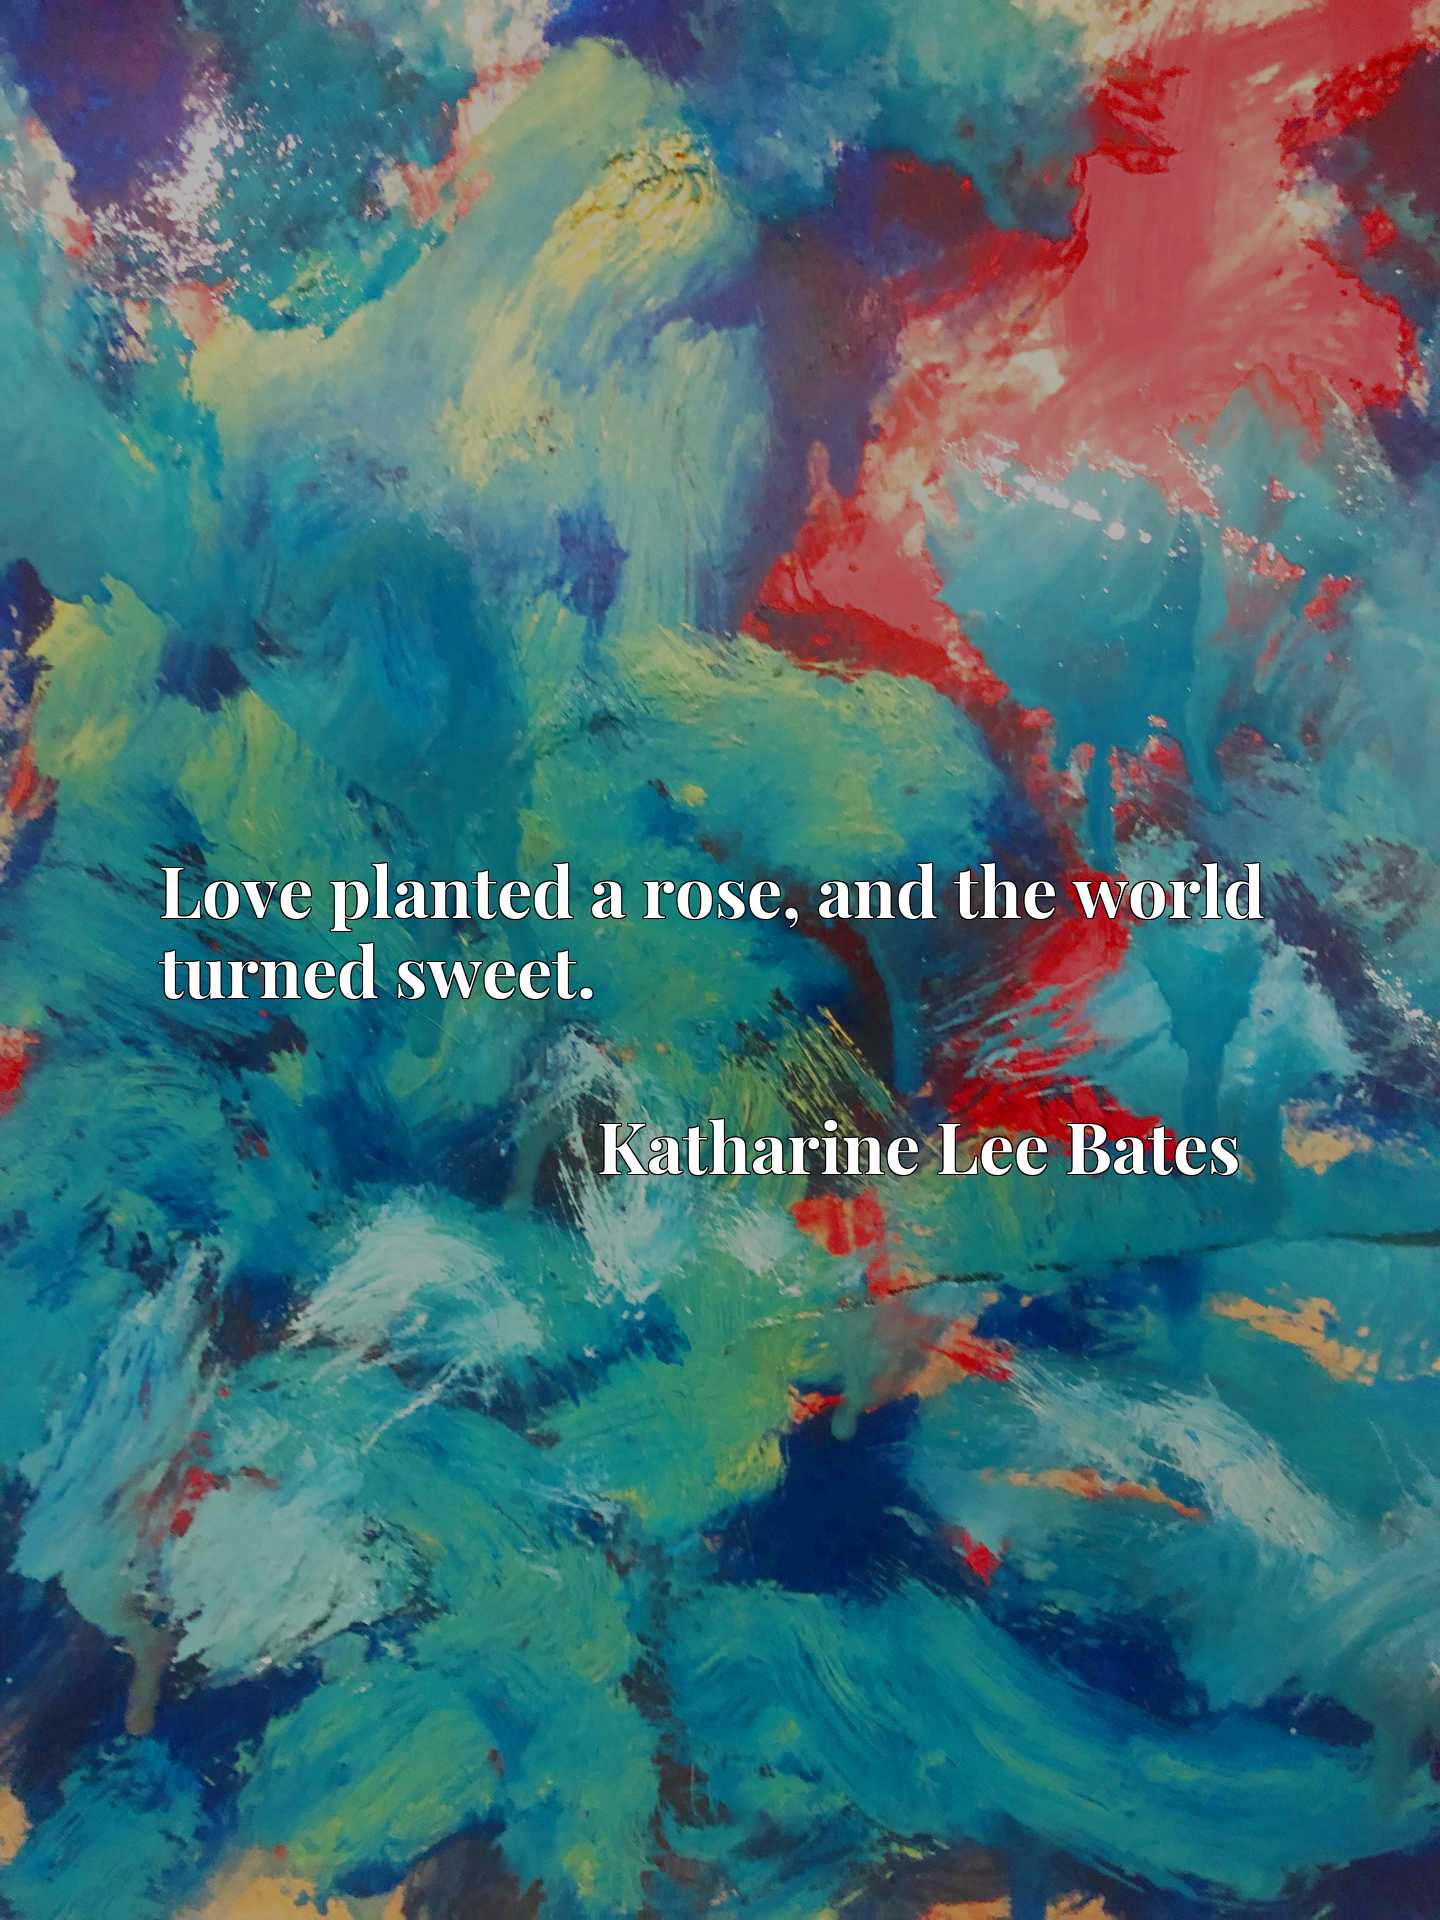 Quote Picture :Love planted a rose, and the world turned sweet.